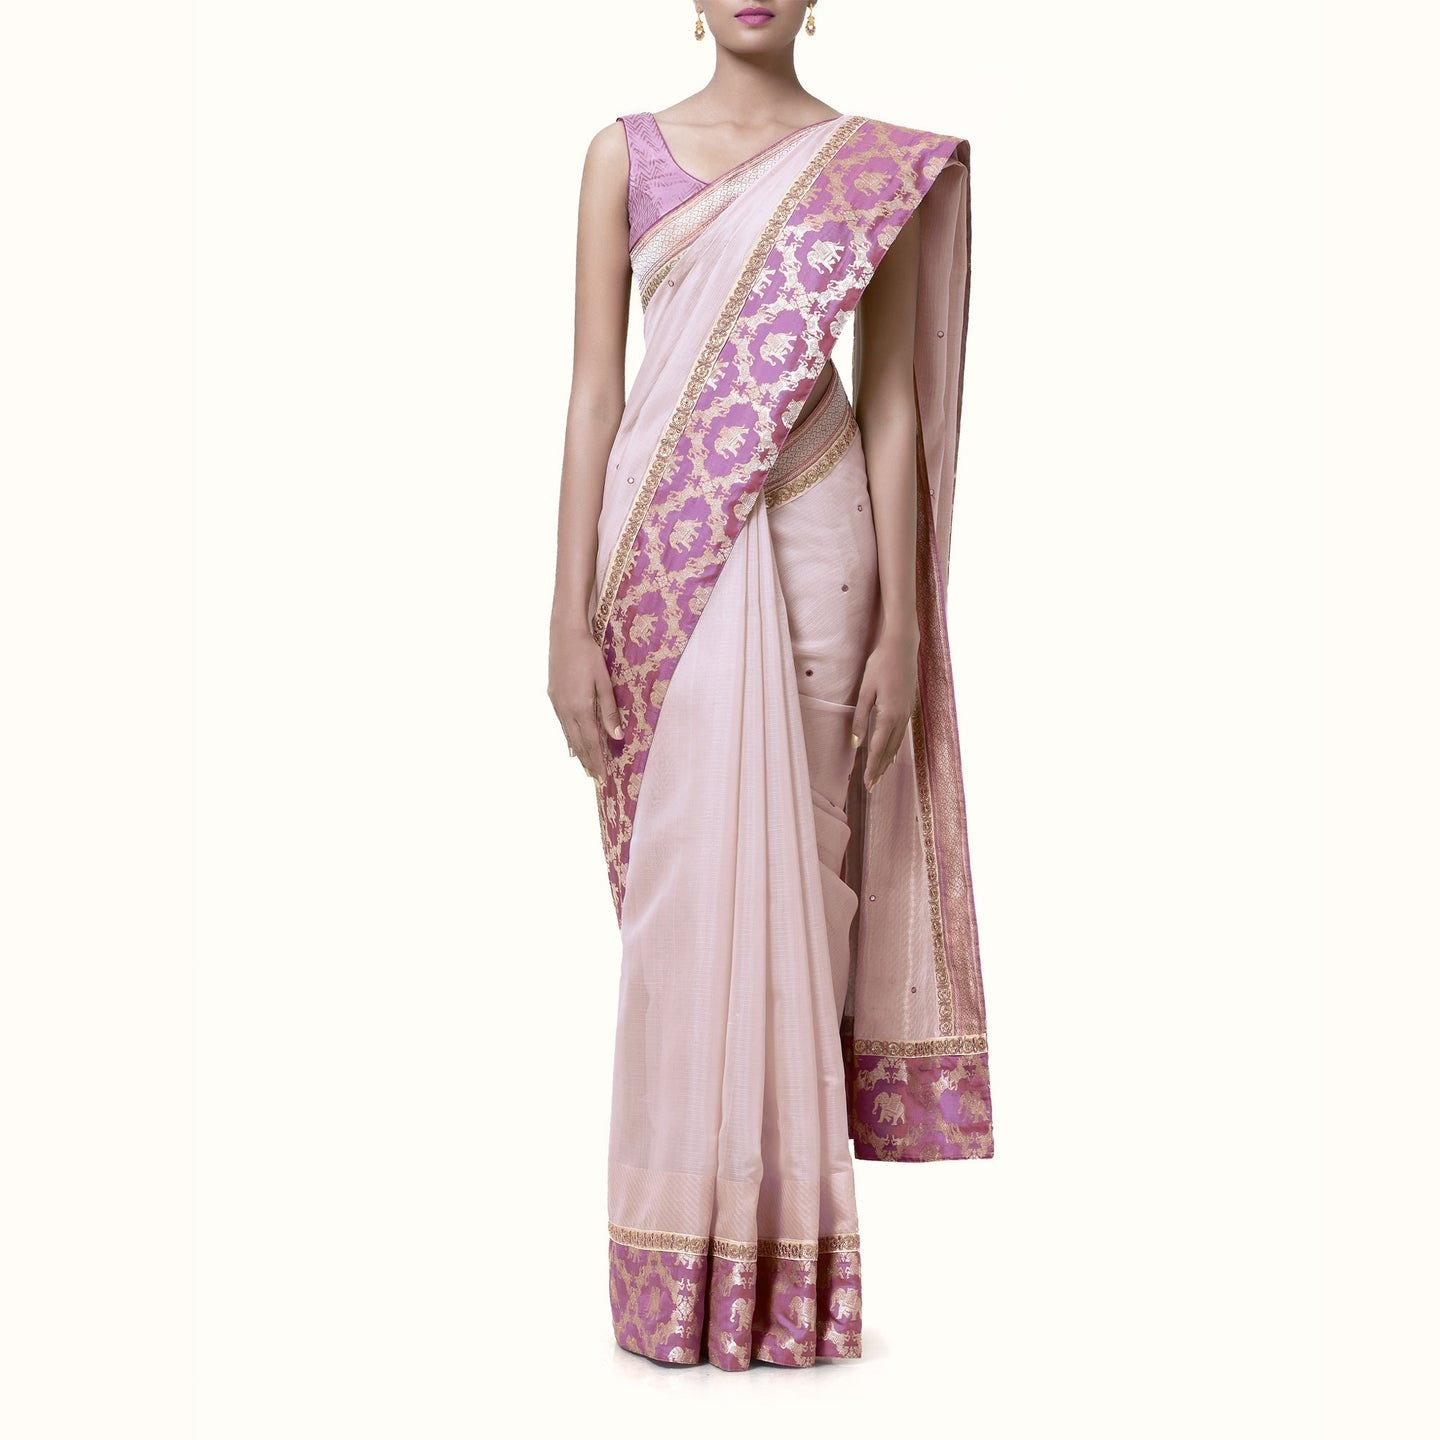 'Scent of Love' Hand-Woven Silk Cotton Sari with Hand-Embroidered Blouse Piece